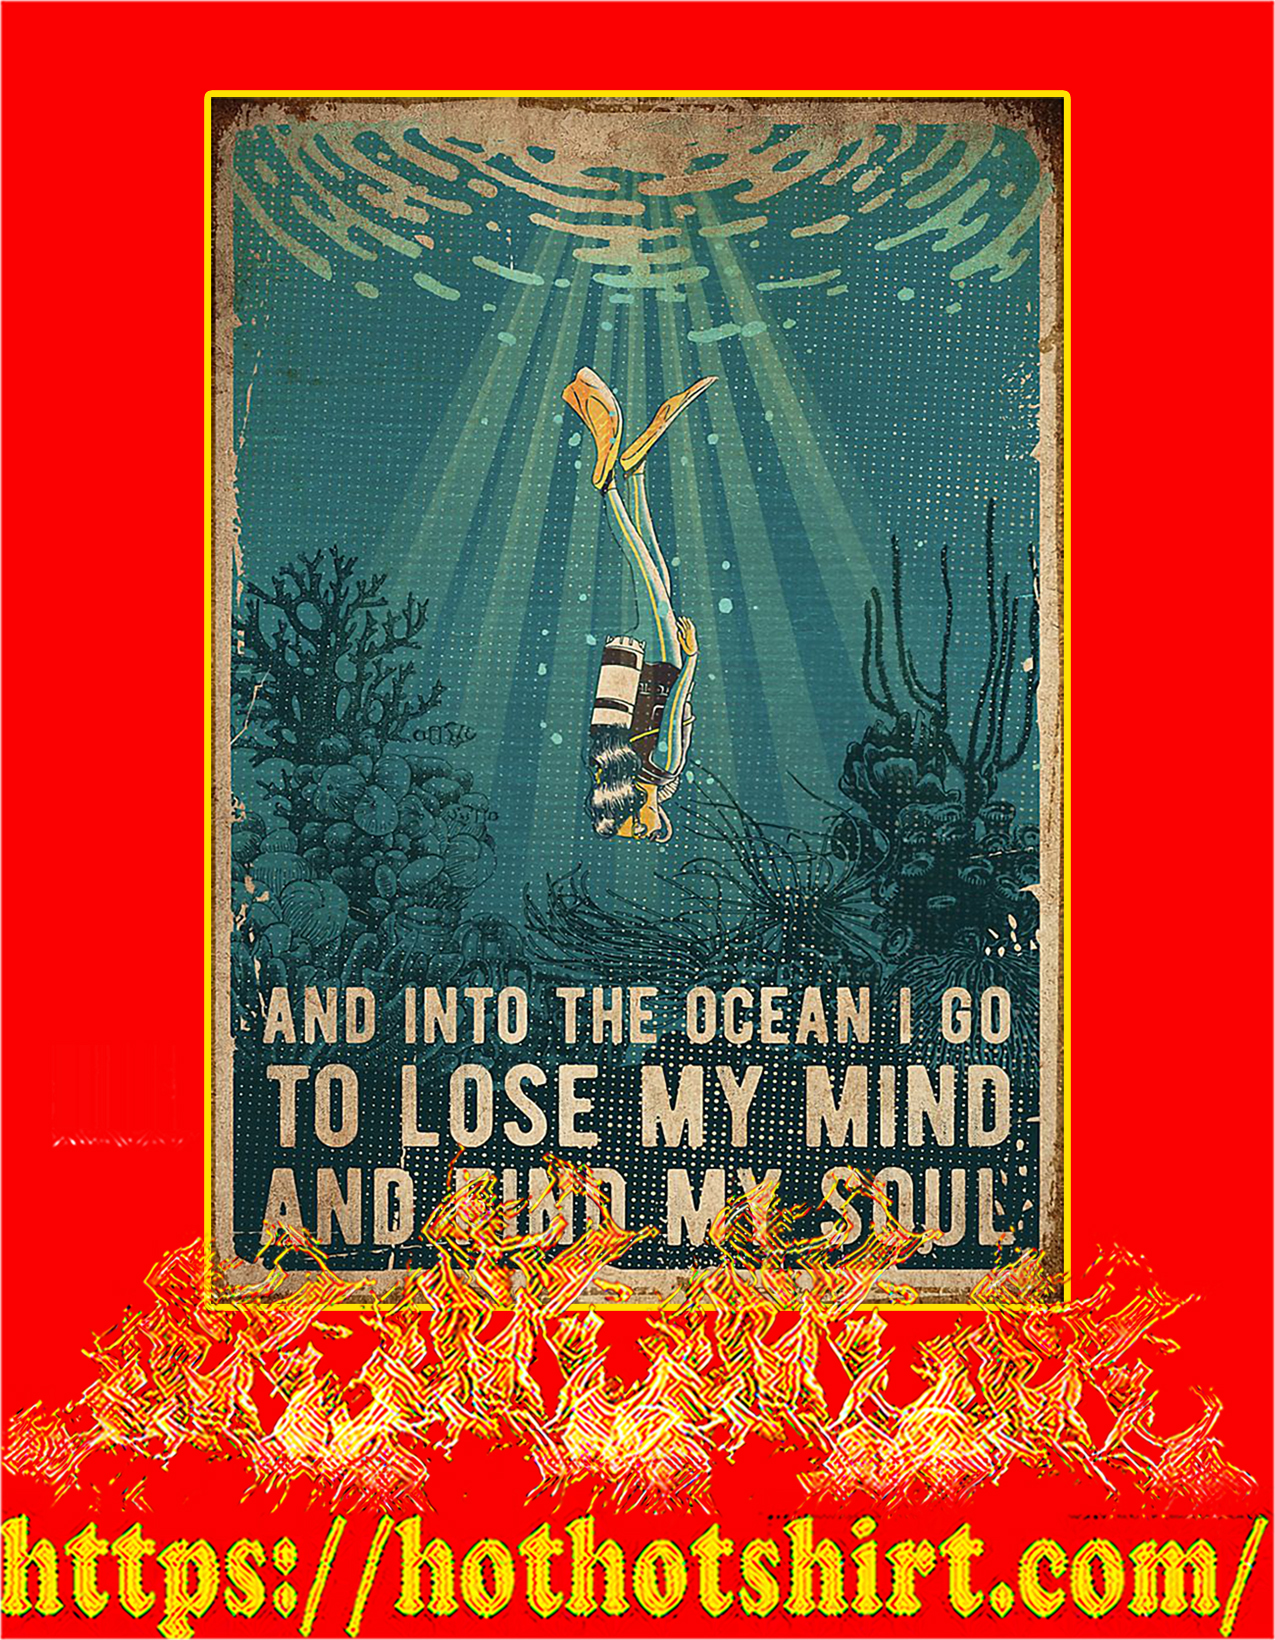 NEW Scuba diving And into the ocean poster - A2